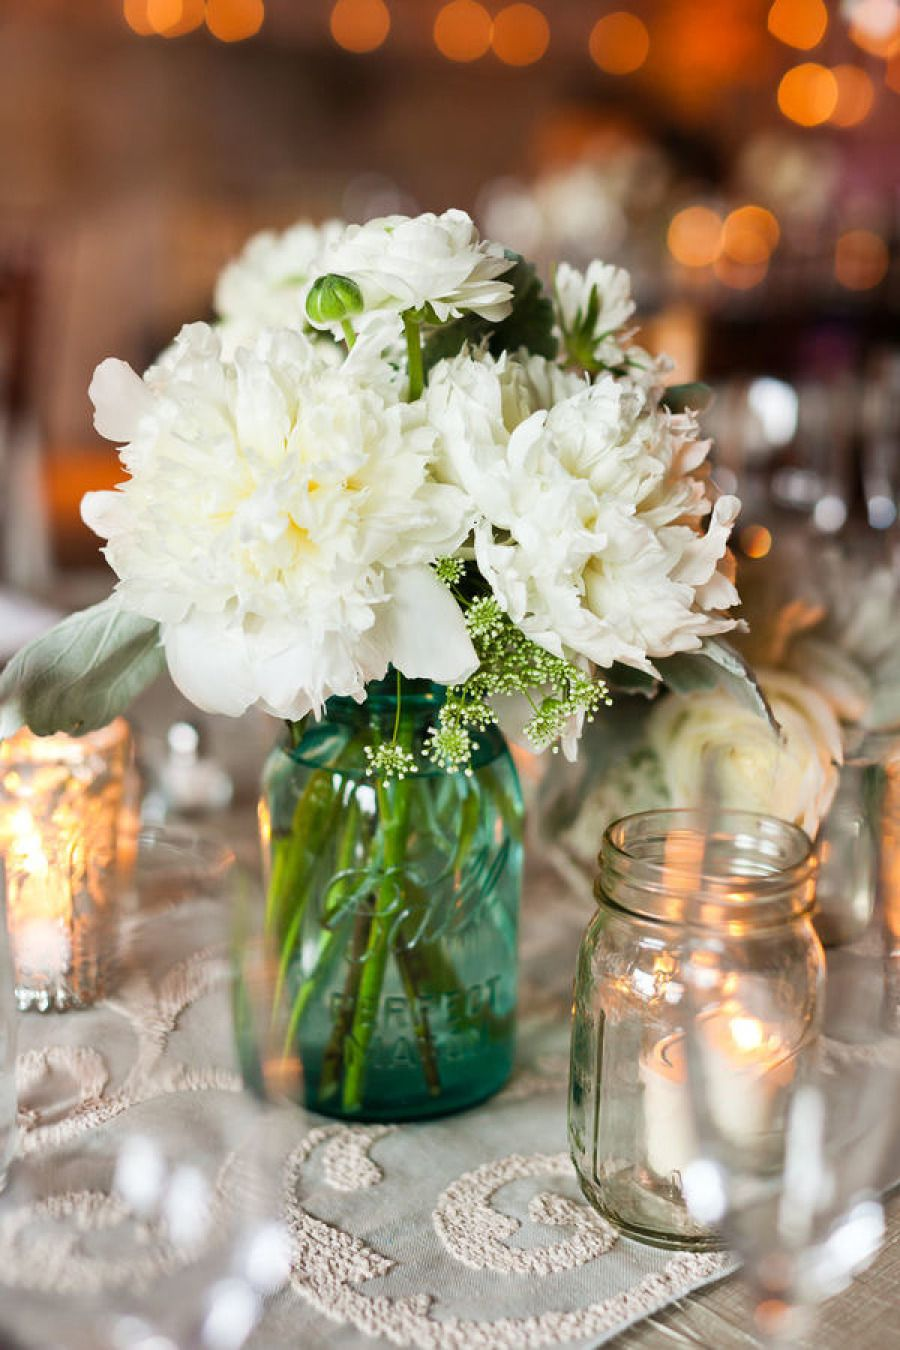 Mason jar wedding decoration ideas  Amaze Your Guests With  Tasteful Wedding Centerpieces